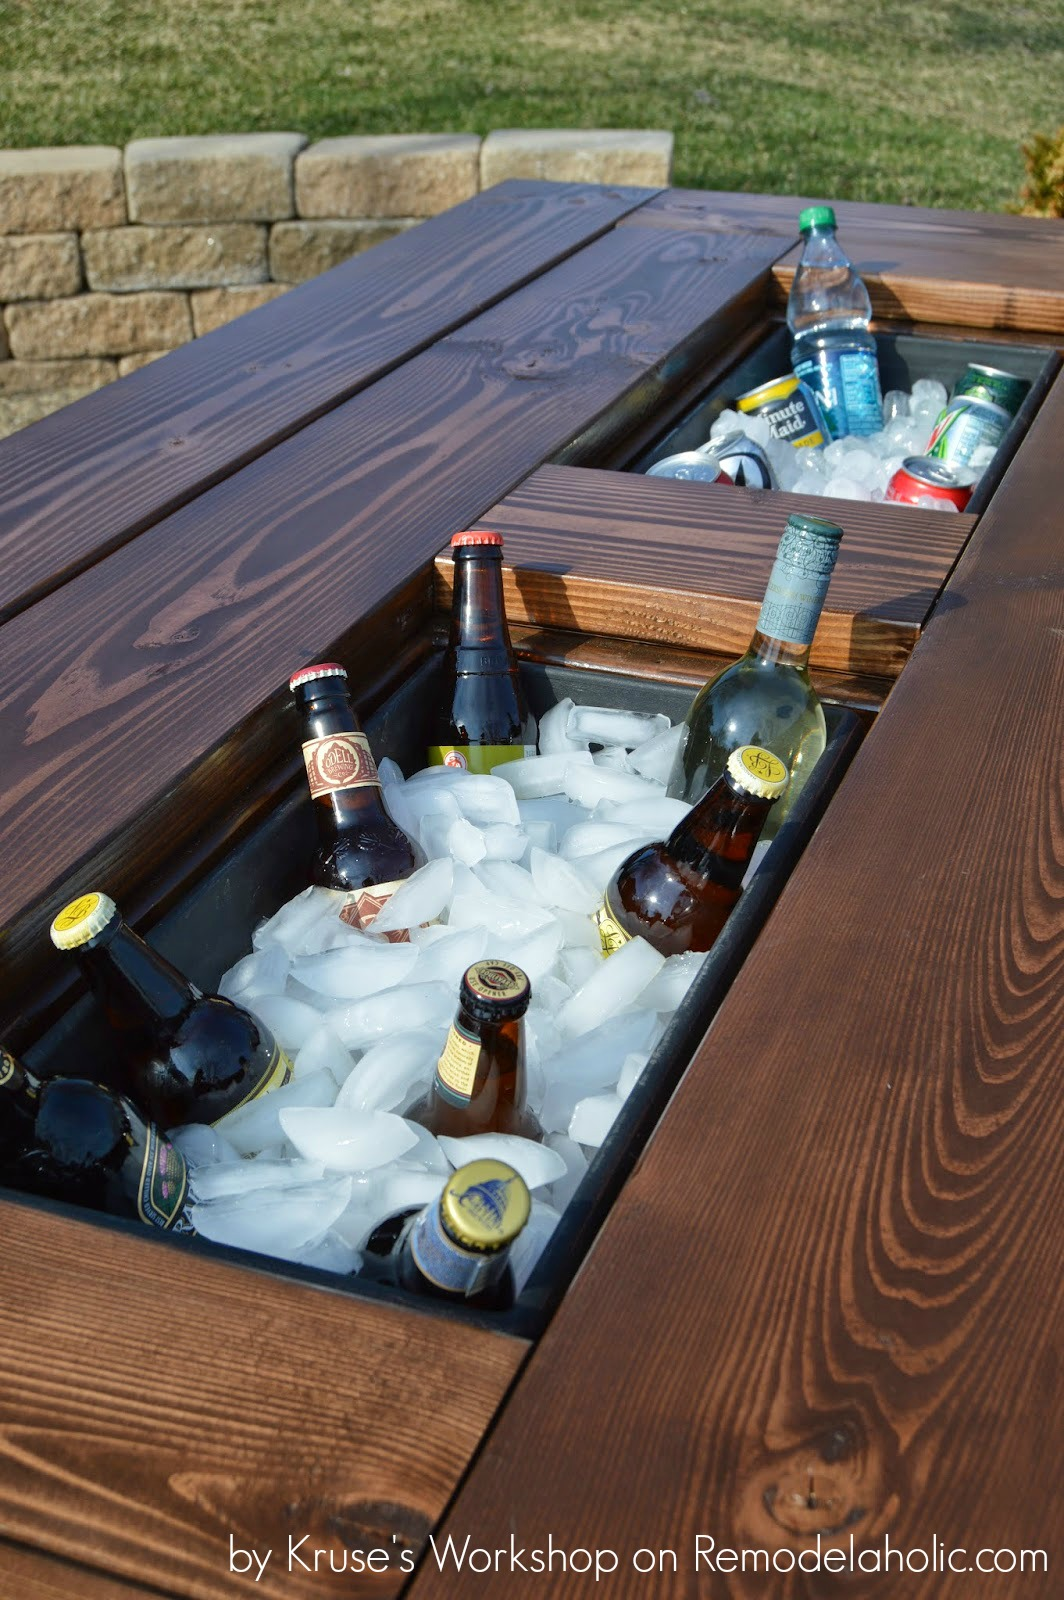 Build-a-patio-table-with-built-in-drink-coolers-from-planter-boxes-Kruses-Workshop-on-@Remodelaholic